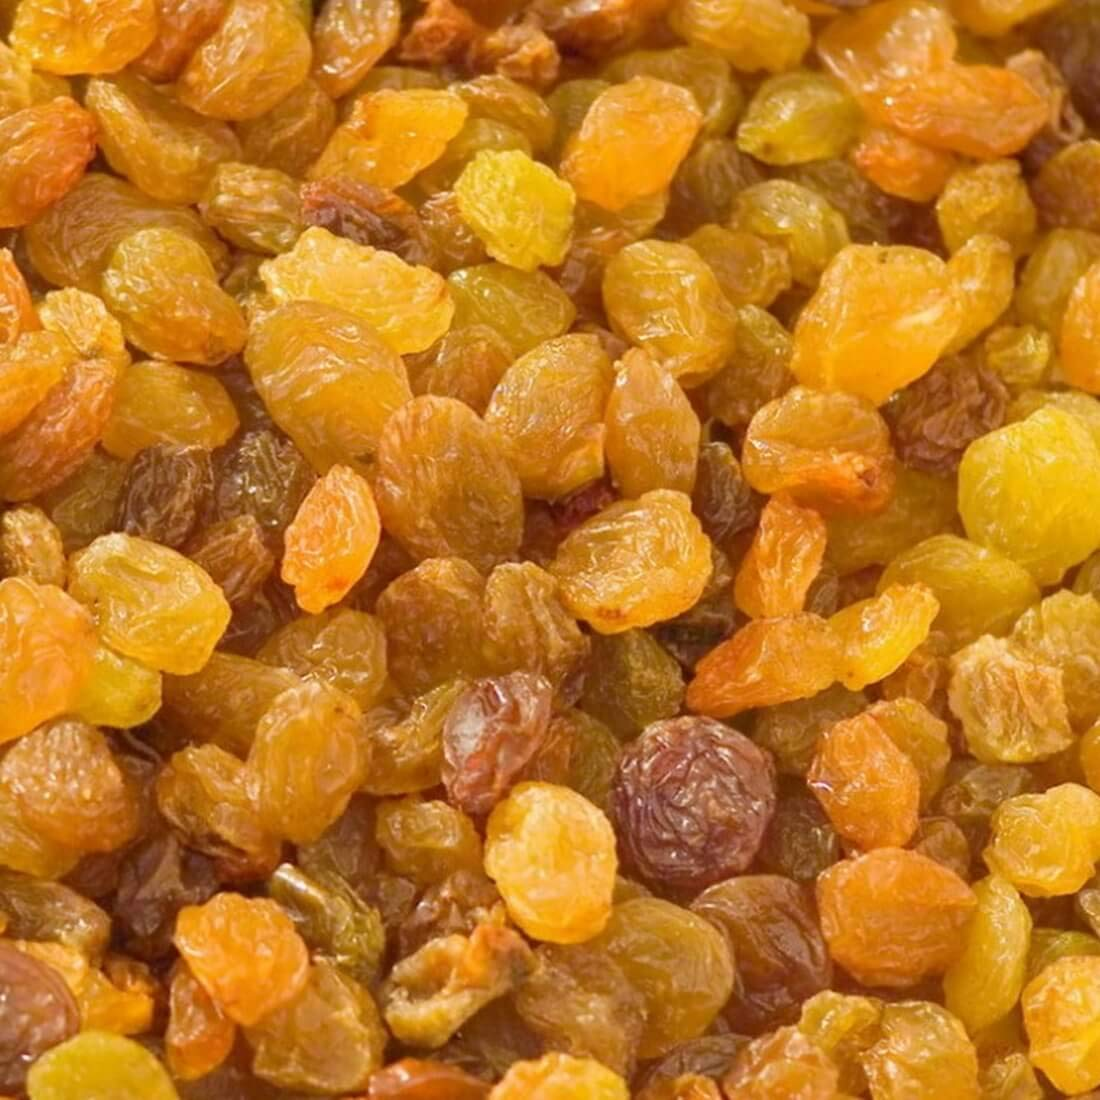 Imported South African Dried Golden Raisins 250g (8.81 ounce)